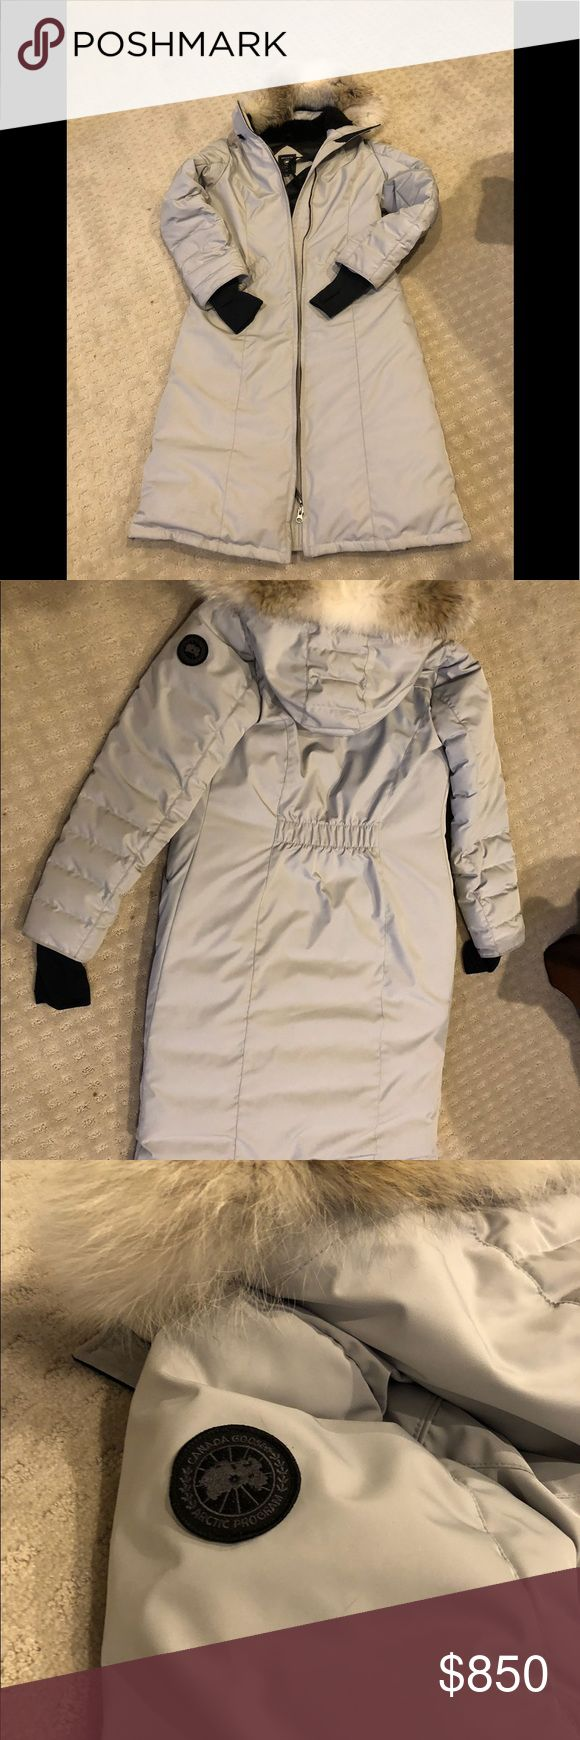 Canada Goose Elrose Parka Black Label silver birch Authentic Canada Goose Elrose Parker black label coat with gorgeous genuine coyote fur trim hood ( removable ) - Gently used in excellent condition - Original tags and receipt. - Silver birch color  - TEI rating 4 ( keeps you warm from 5* -~13*)  yes, I have tested it here in New England!   - Sleeves are made from nylon spandex ( not cotton like their         other coats ) Canada Goose Jackets & Coats Puffers